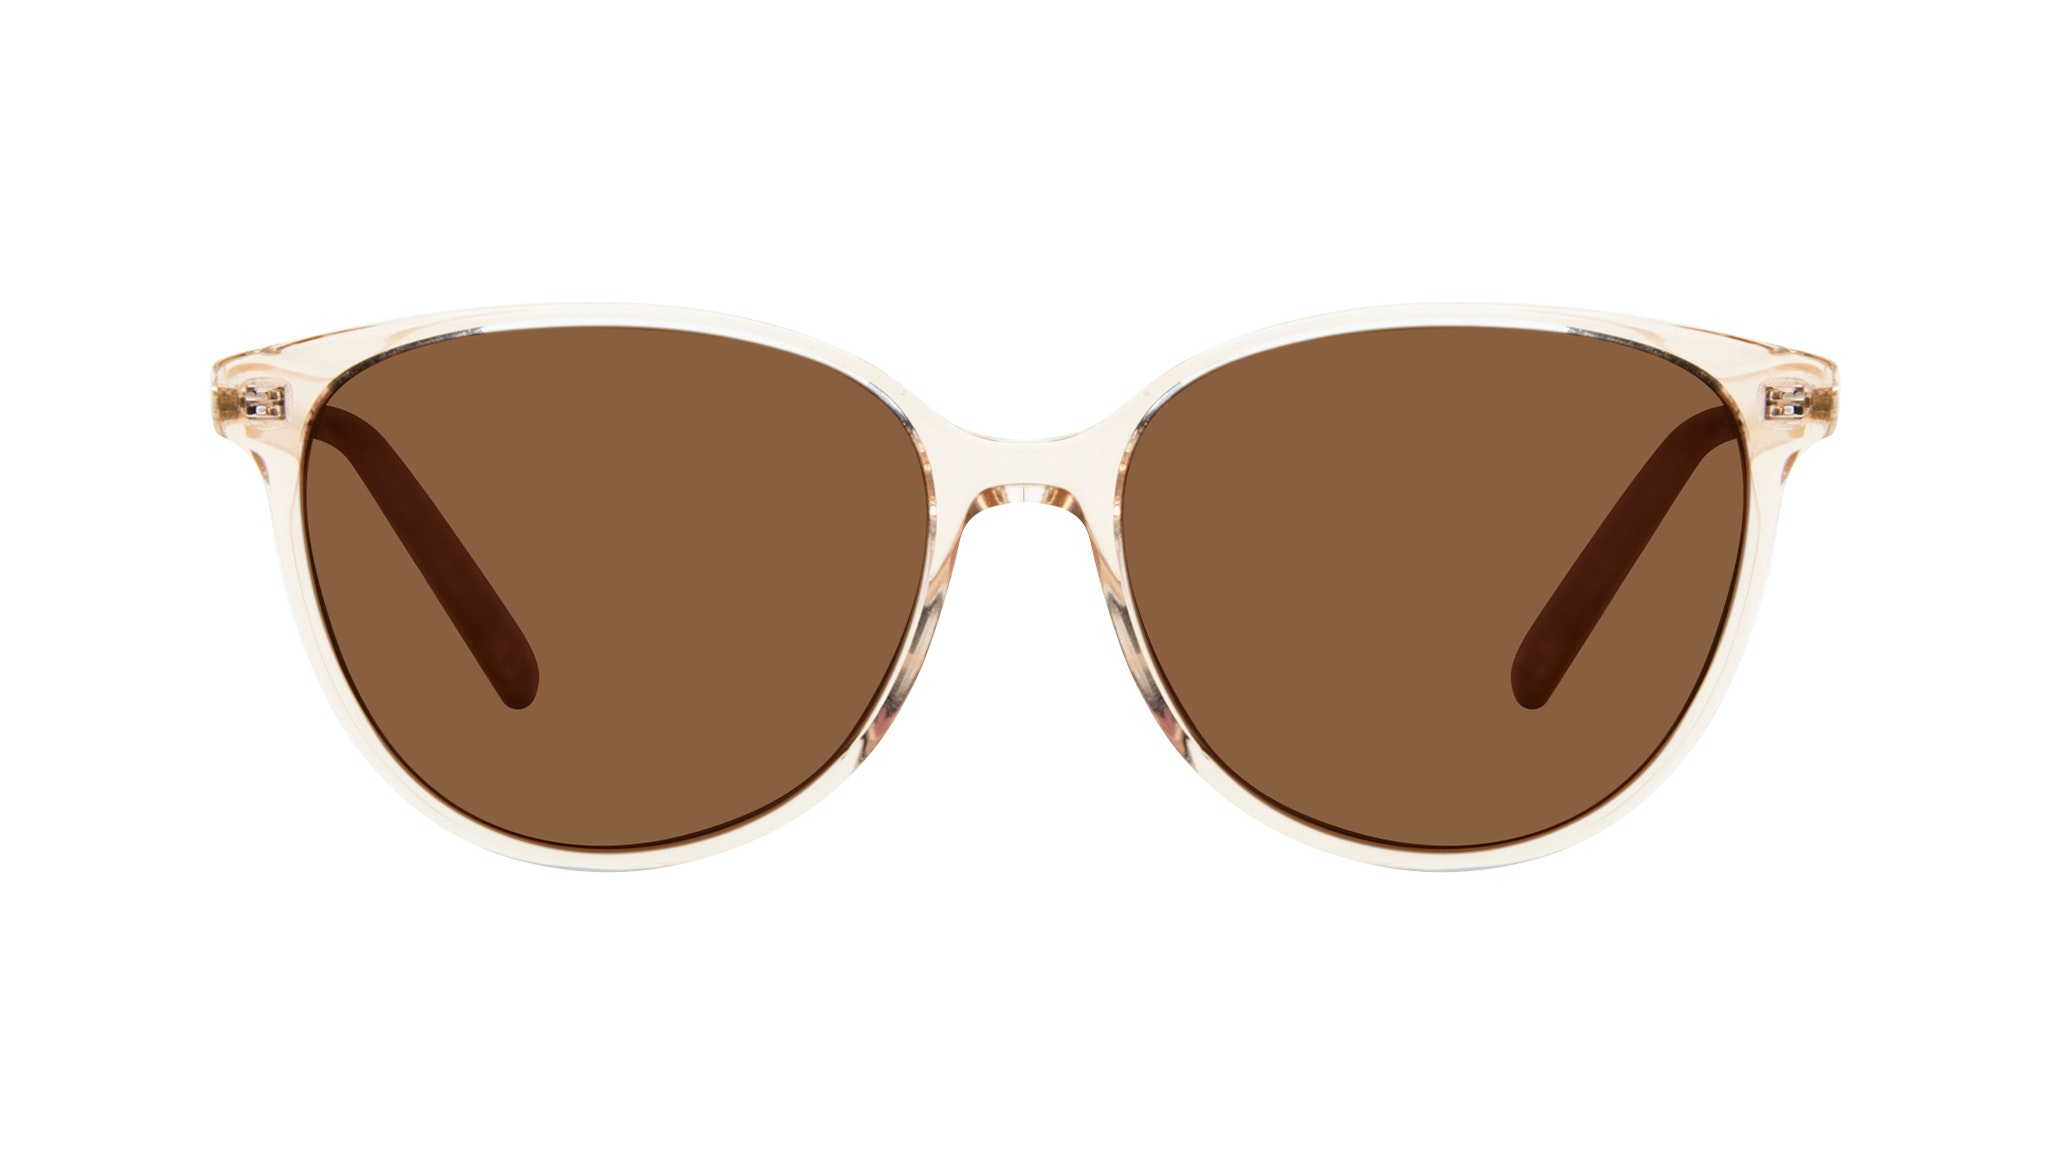 Affordable Fashion Glasses Round Sunglasses Women Imagine II Golden Marble Front